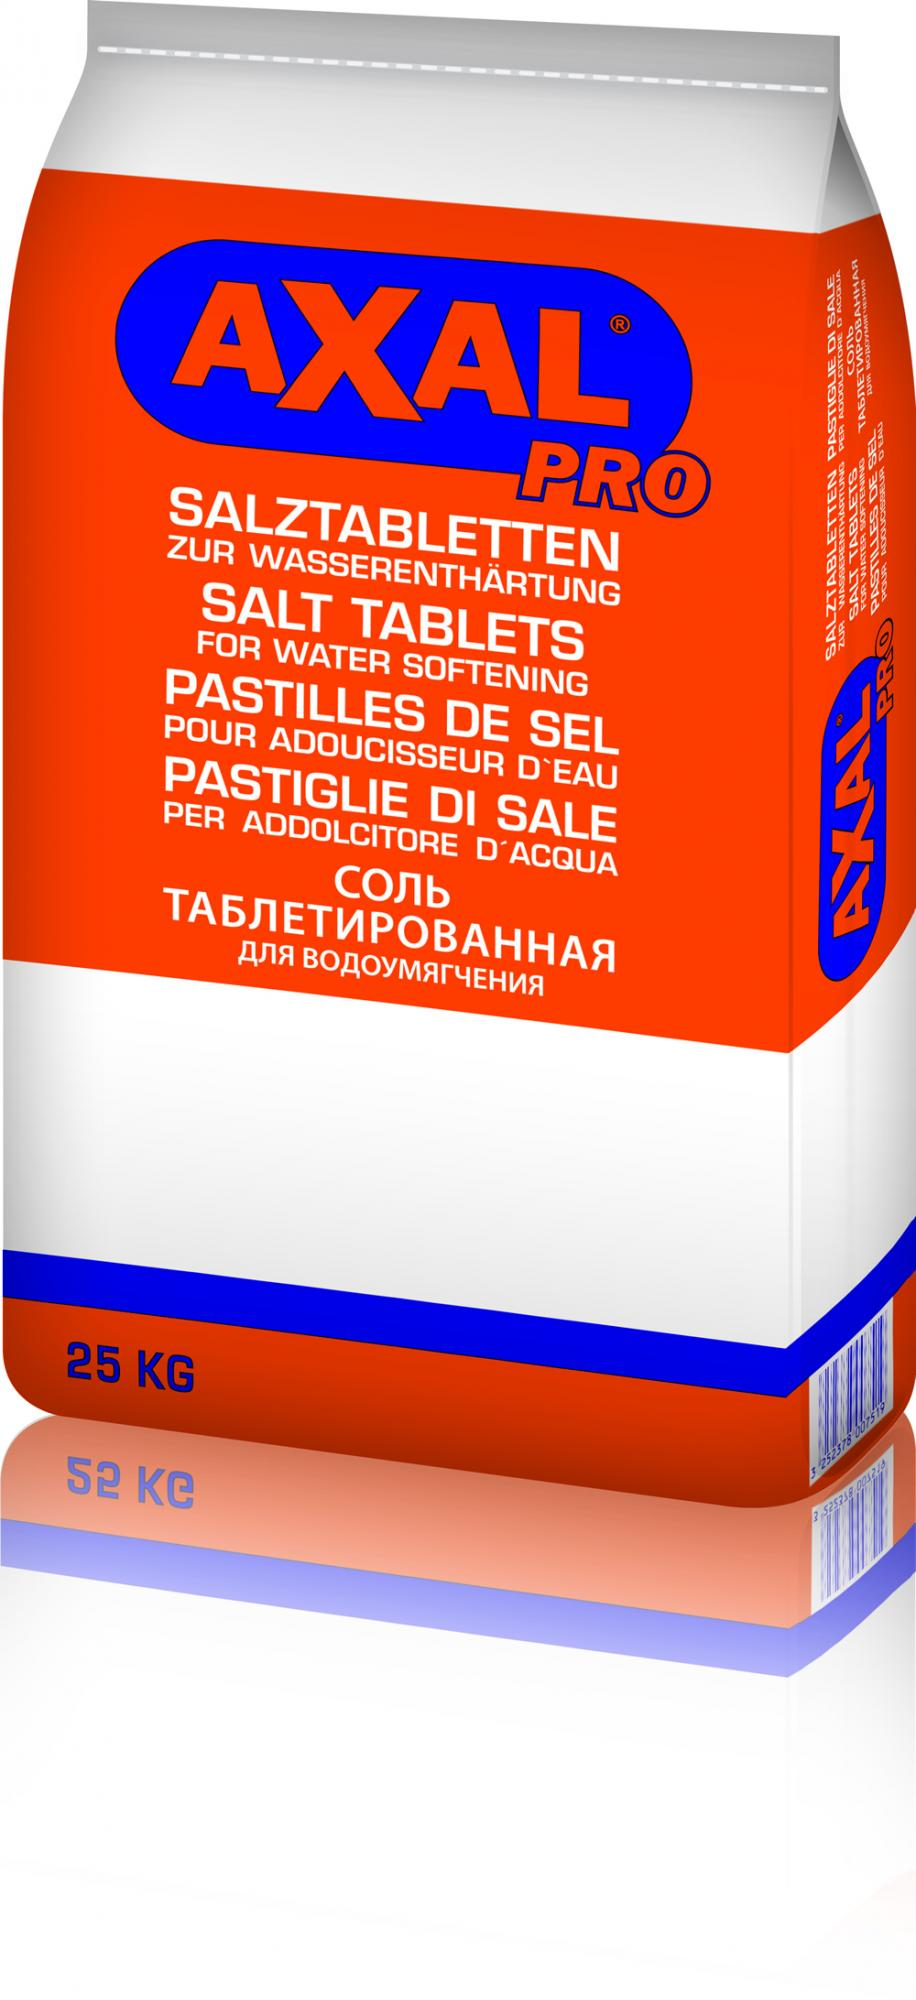 Salt Tablets - Water Softening